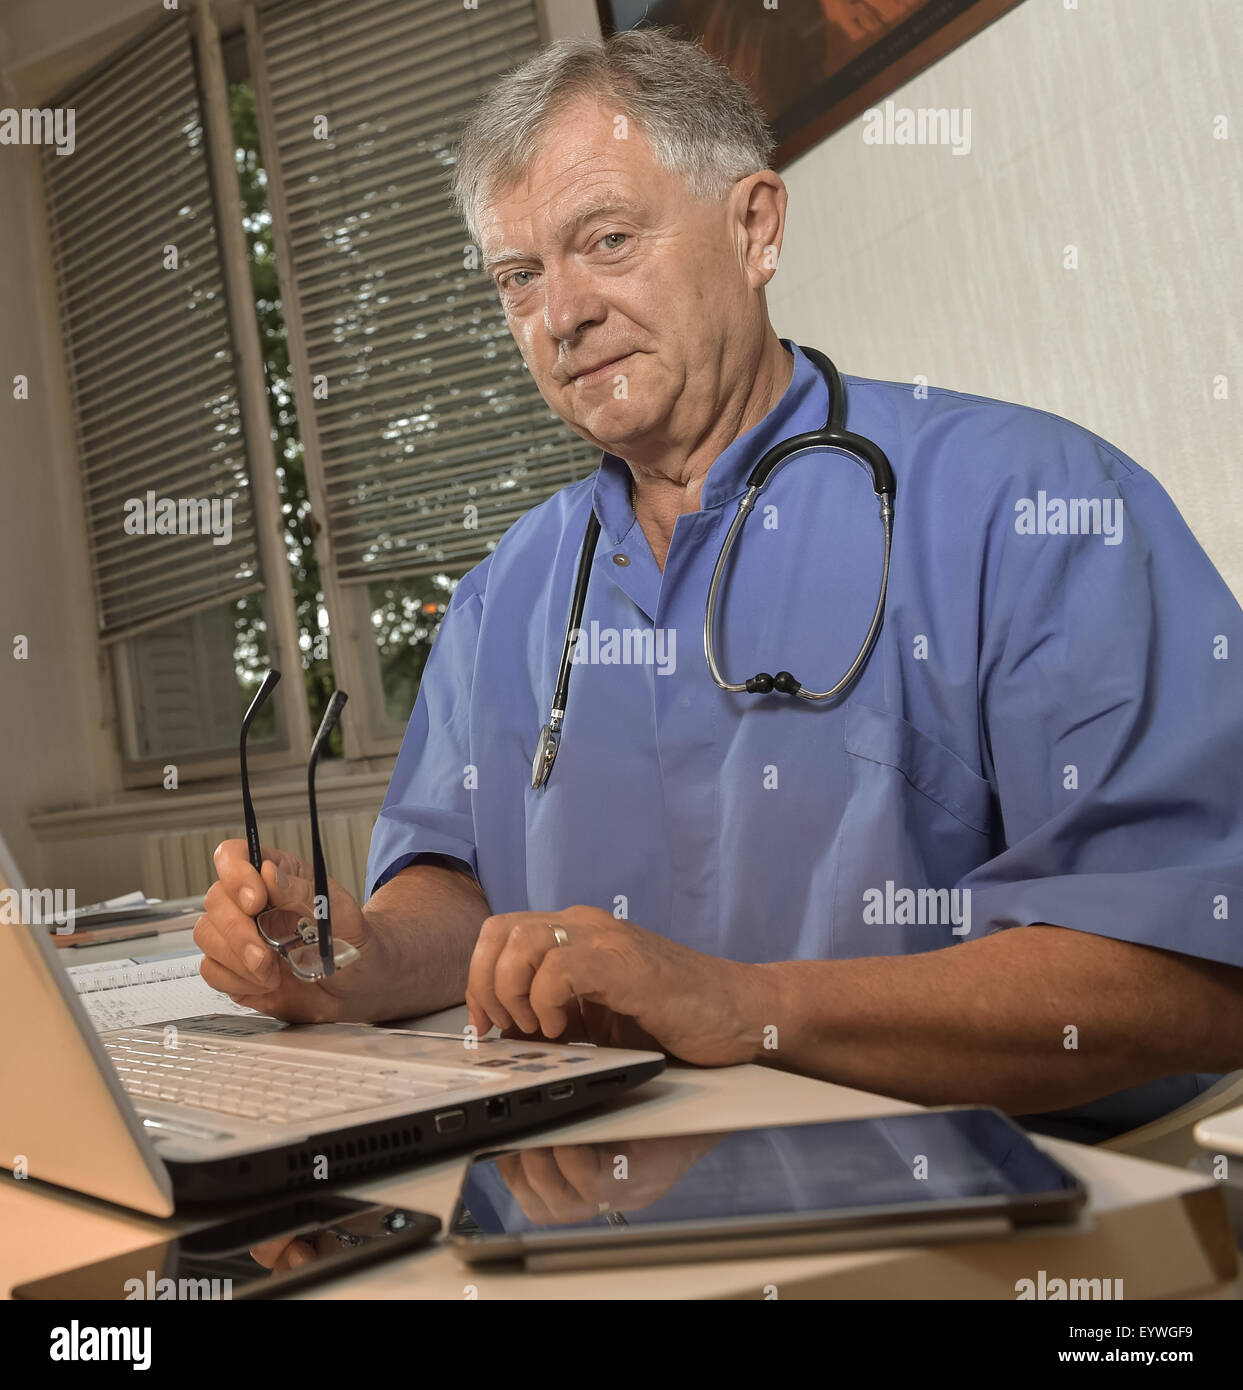 Portrait of smiling doctor at laptop in office - Stock Image